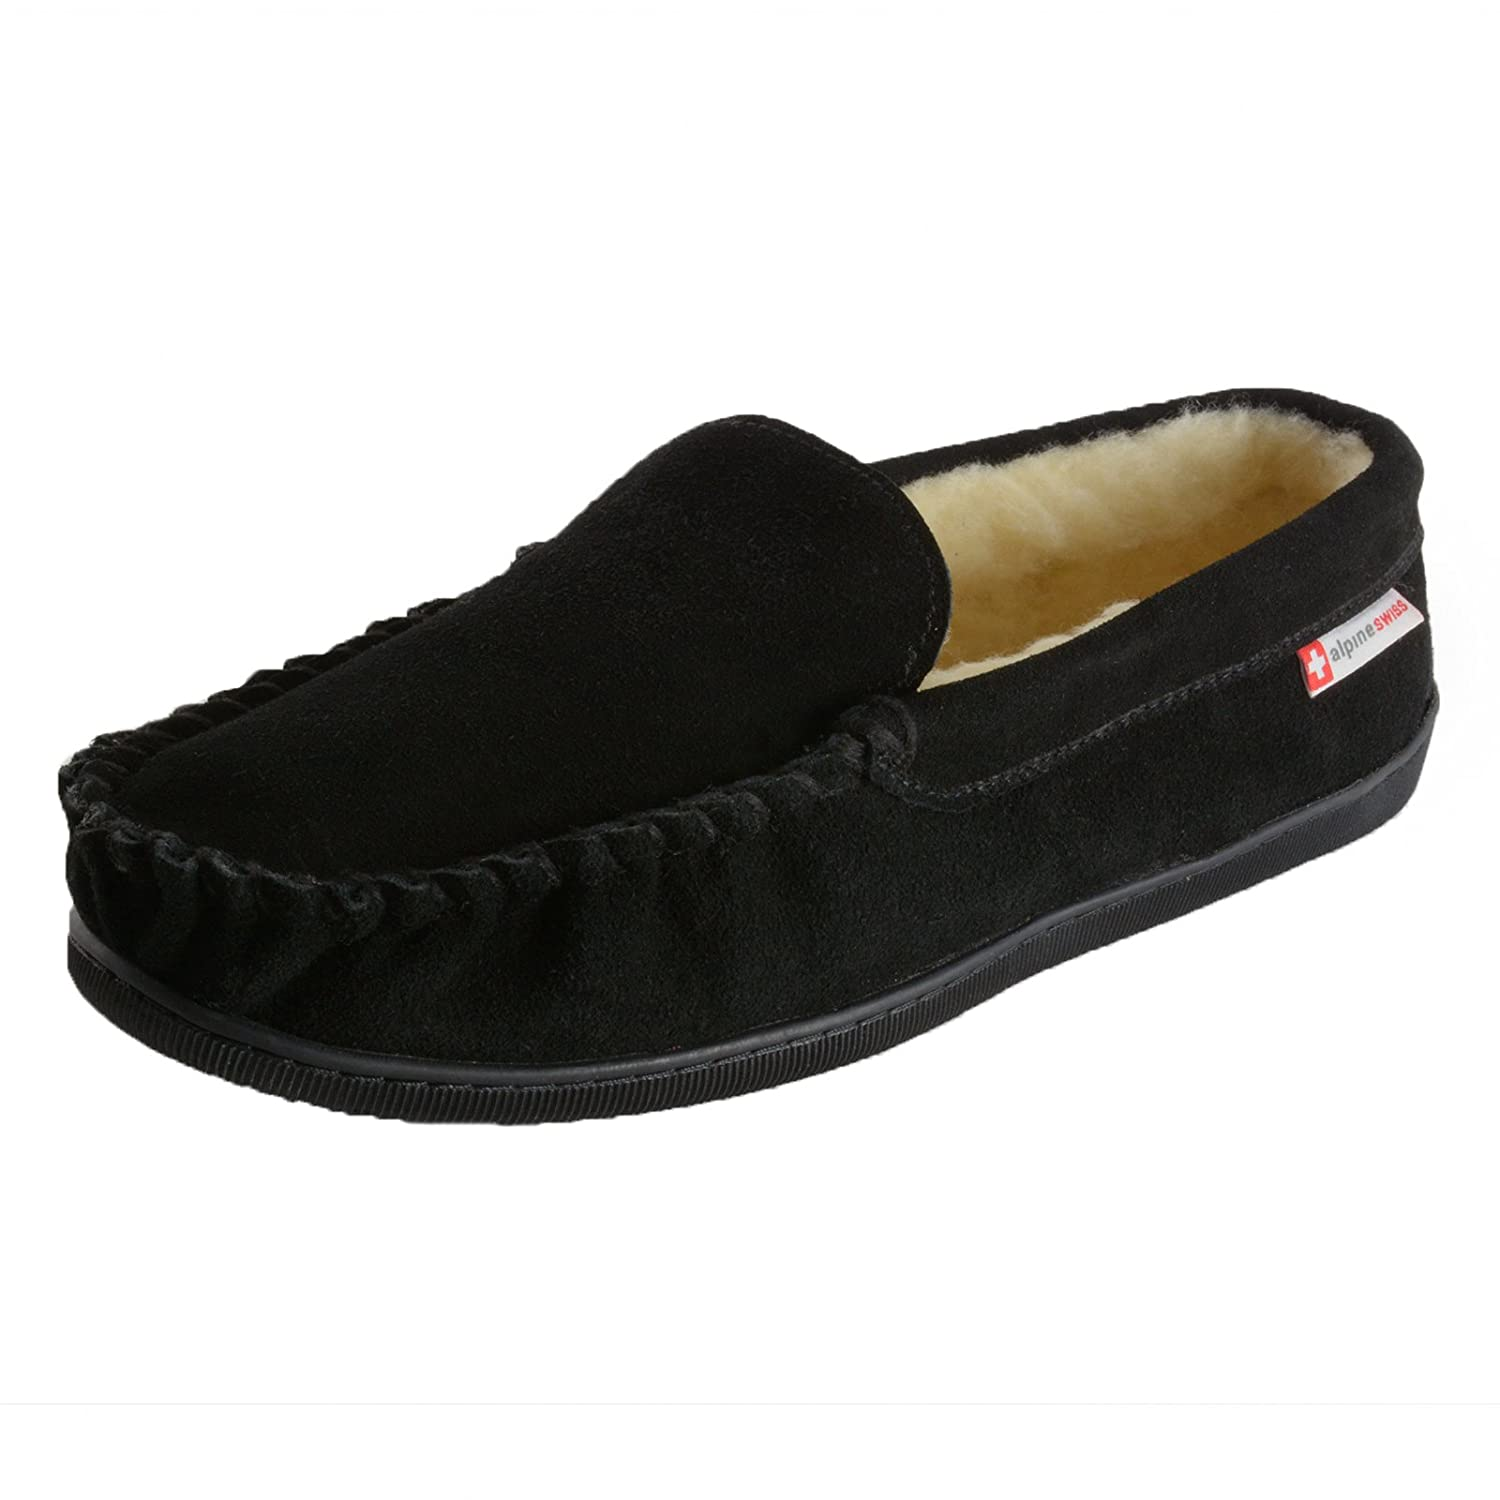 Alpine Swiss Sabine Womens Suede Shearling Slip On Moccasin Slipper